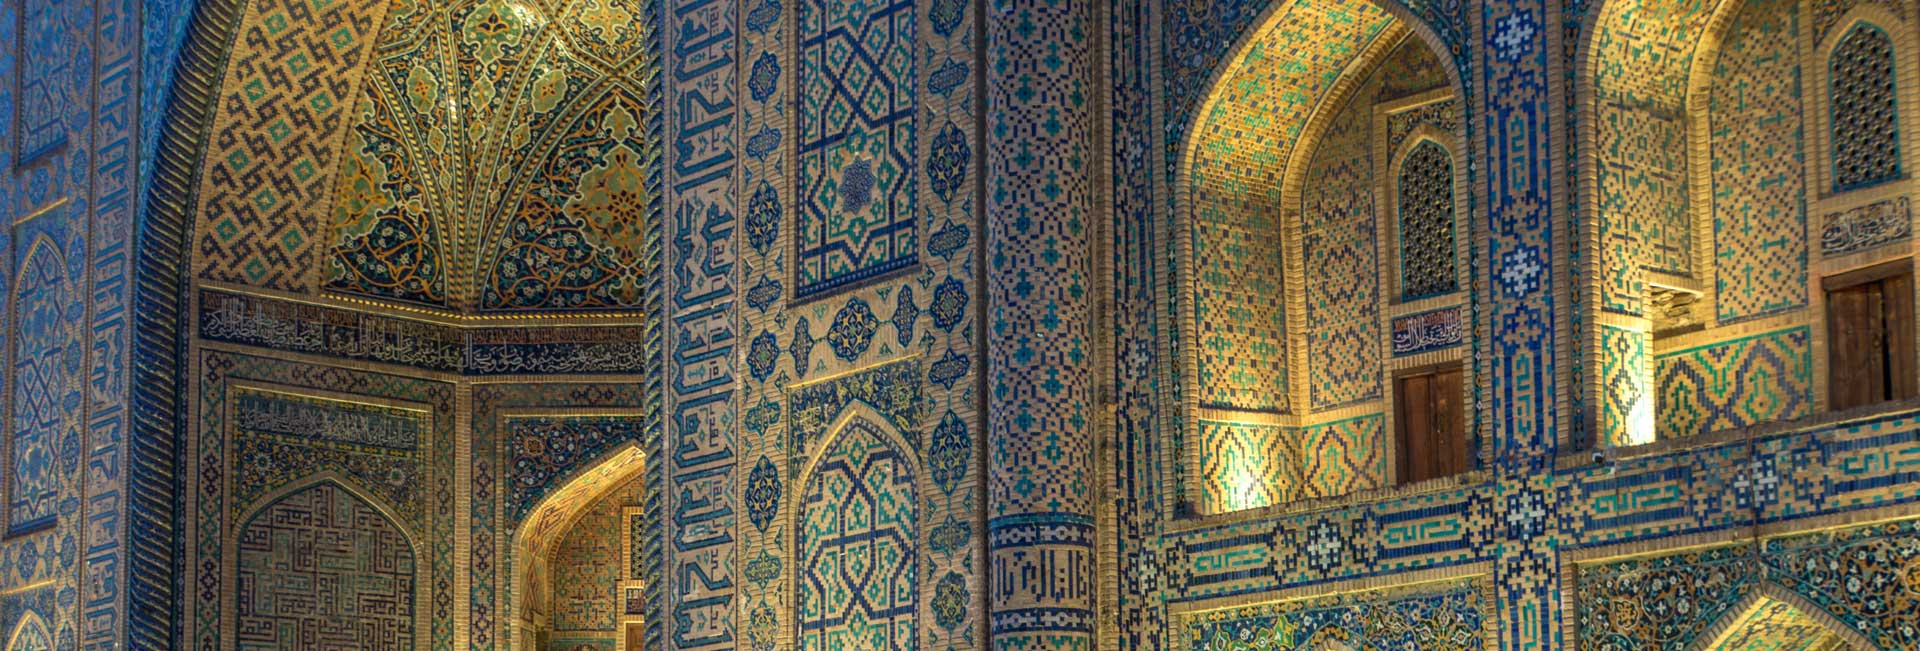 Intricate tile work at Samarkand's Registan Square. Photo credit: Andra Artemova